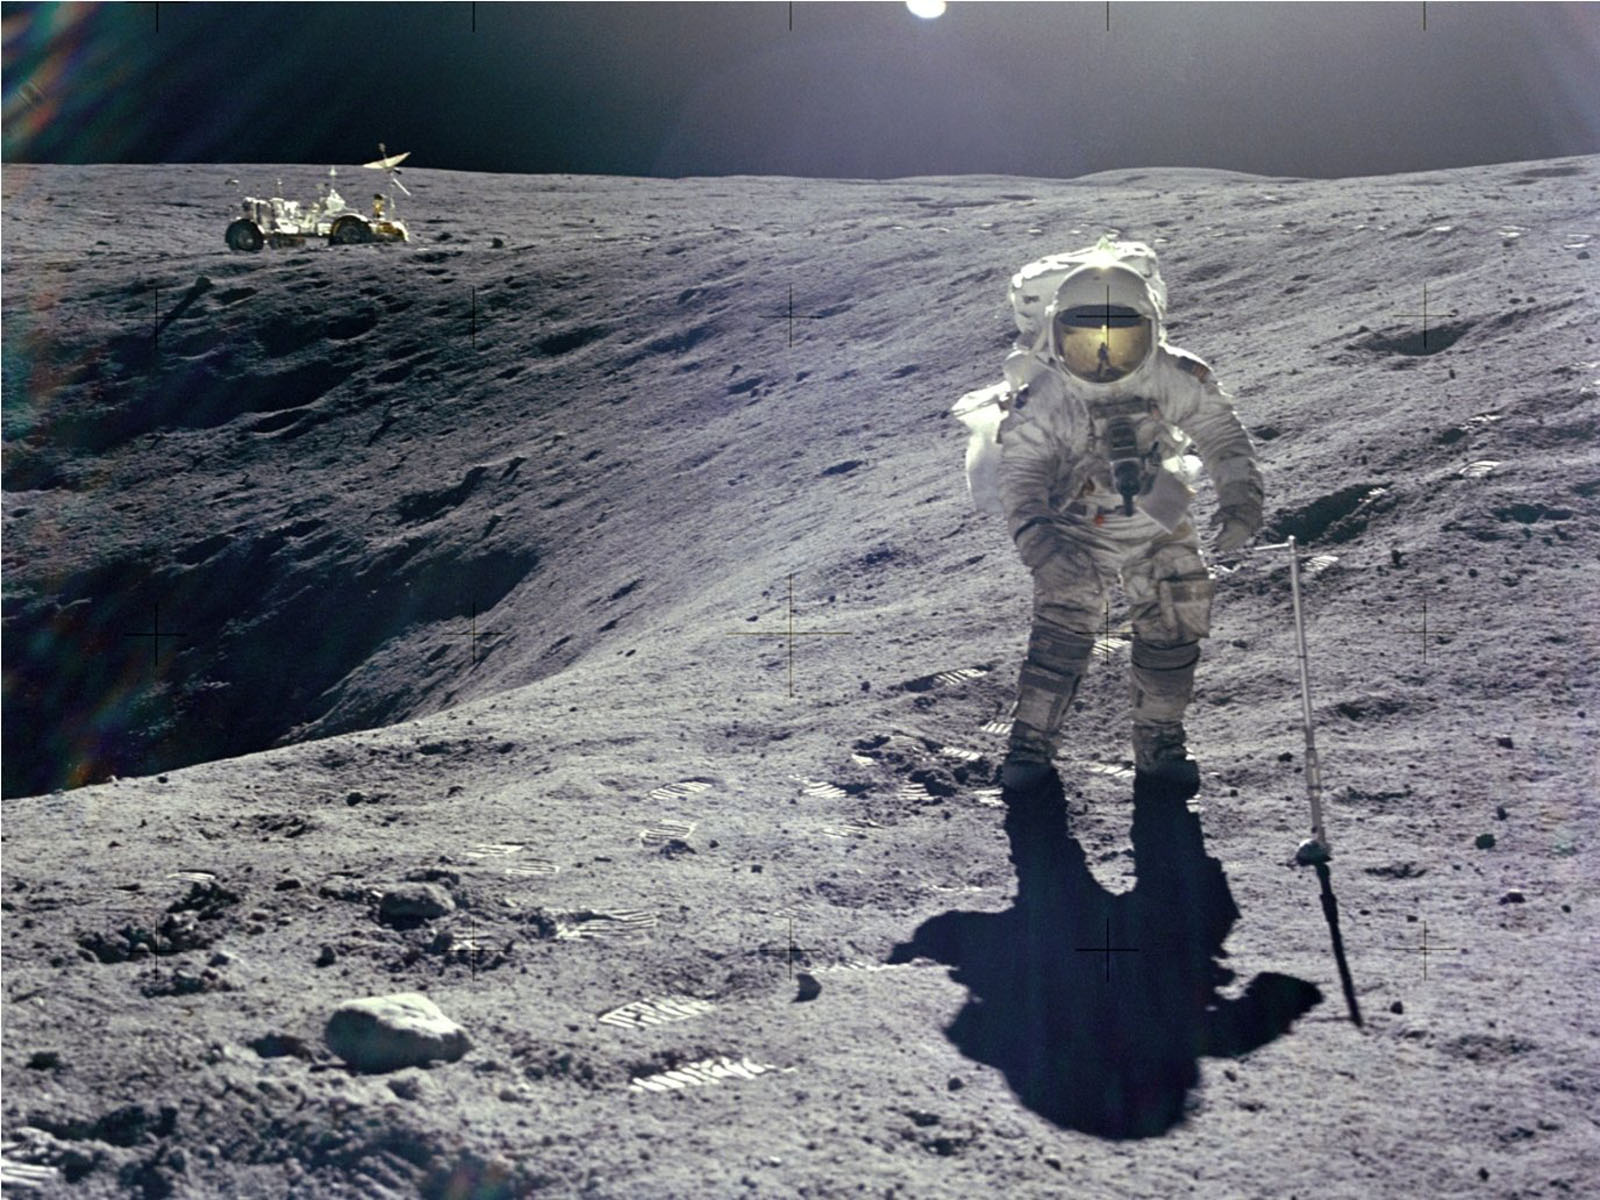 Leap Motioning Past 2013  Kabbalah and Technology Year-in-ReviewMoon Landing Pictures 1969